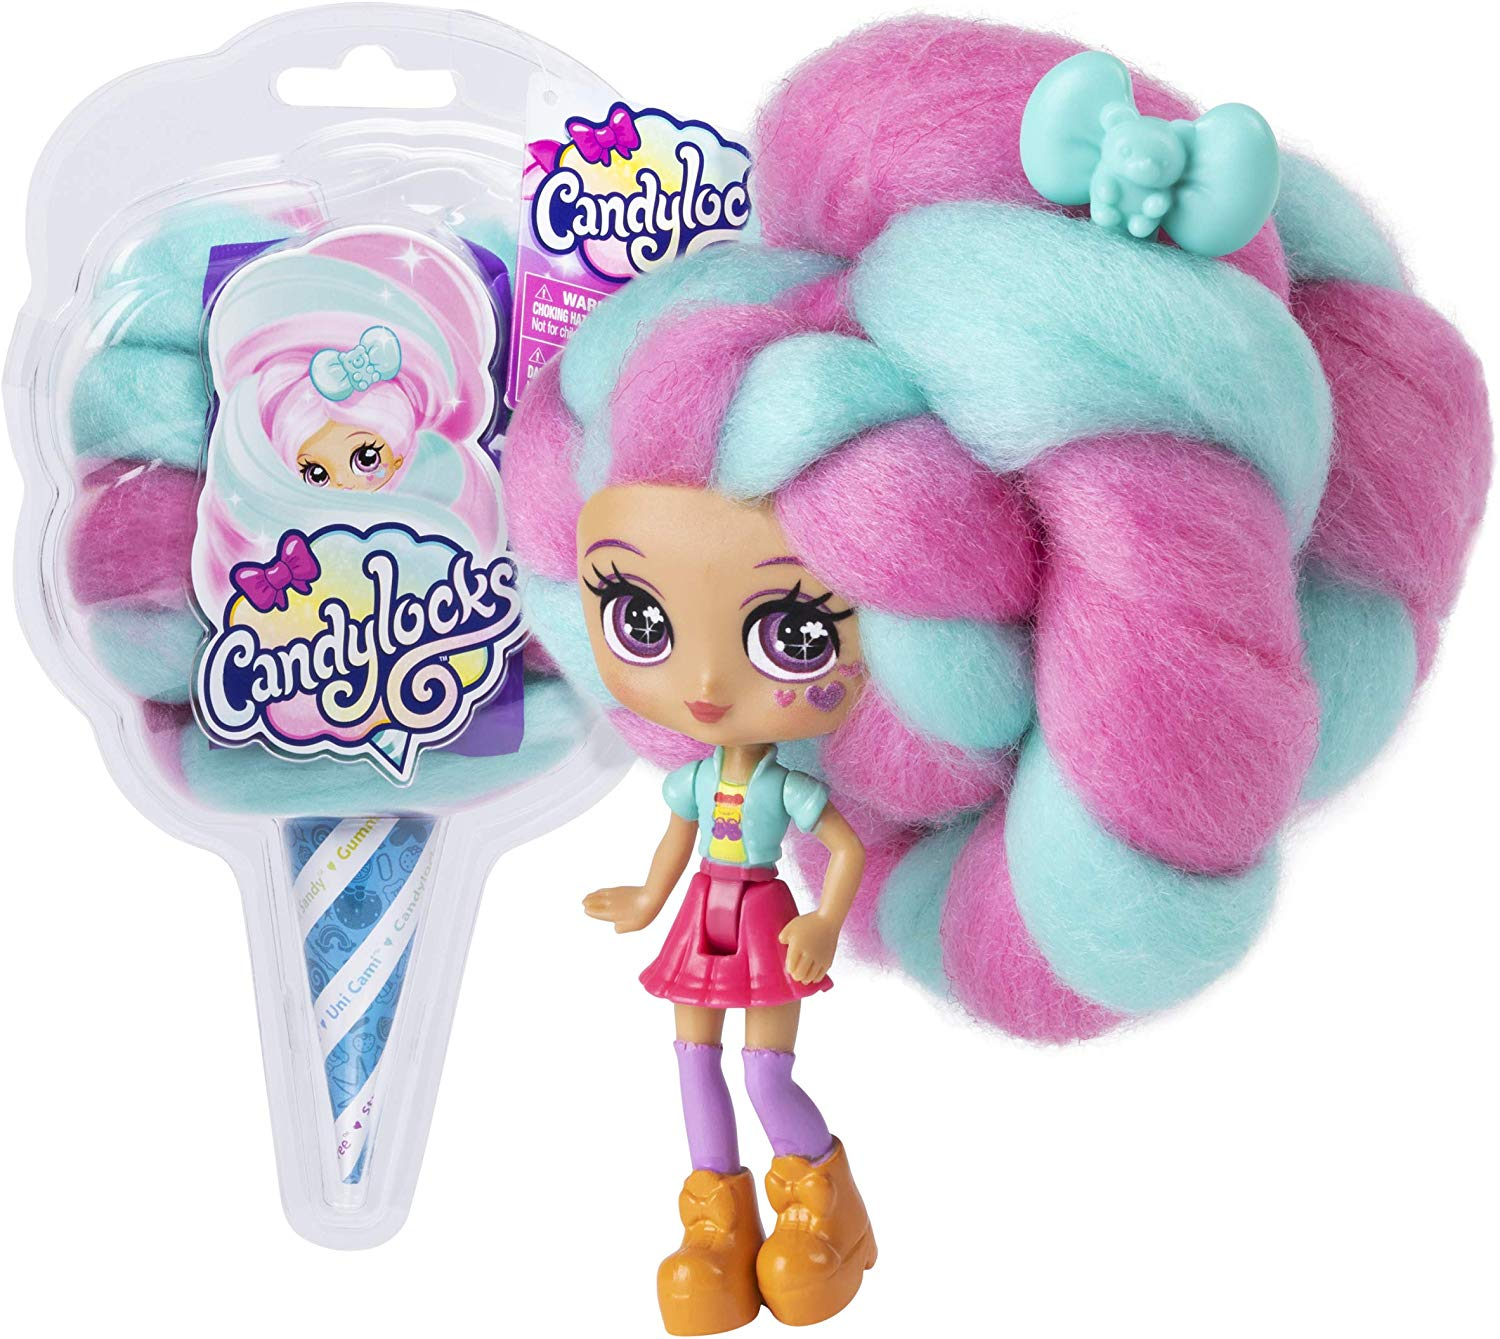 Candylocks Hair Dolls Toy For Girl With Scent Sweet Treat Hobbies Dolls Accessories Marshmallow Surprise Hairstyle Gift